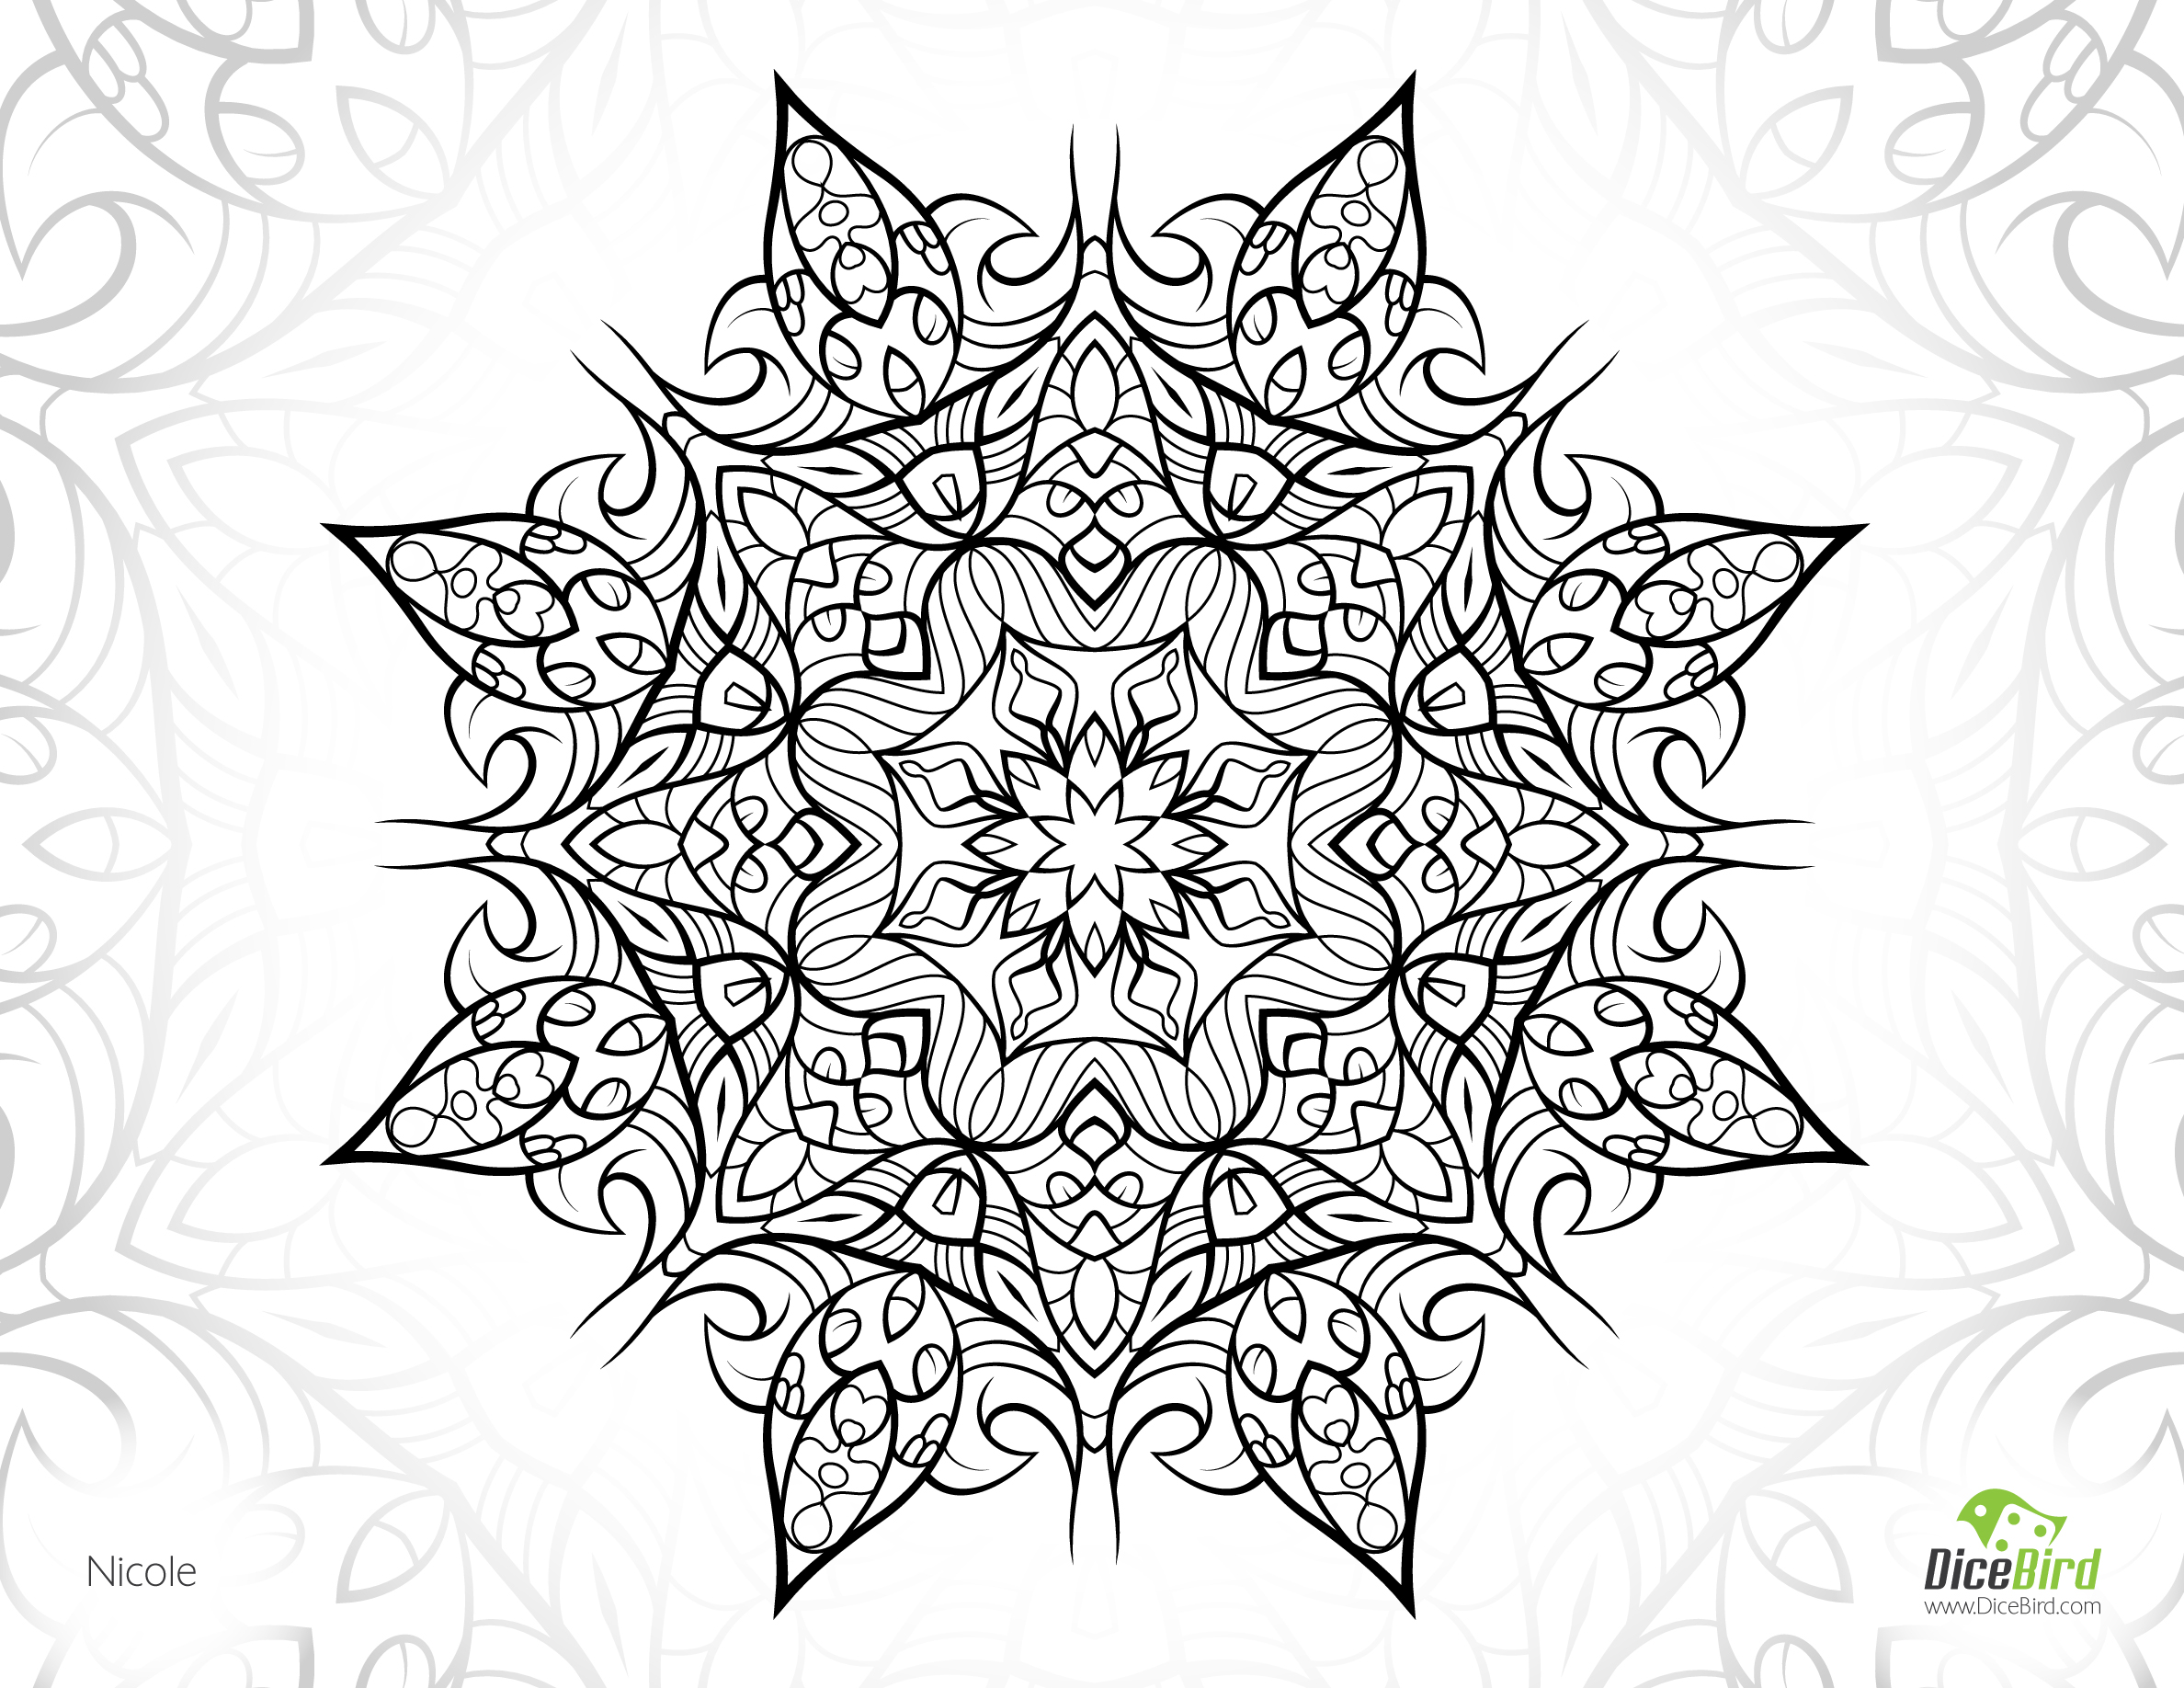 2376x1836 Nicole Flower Free Printable Complex Coloring Pages Printable